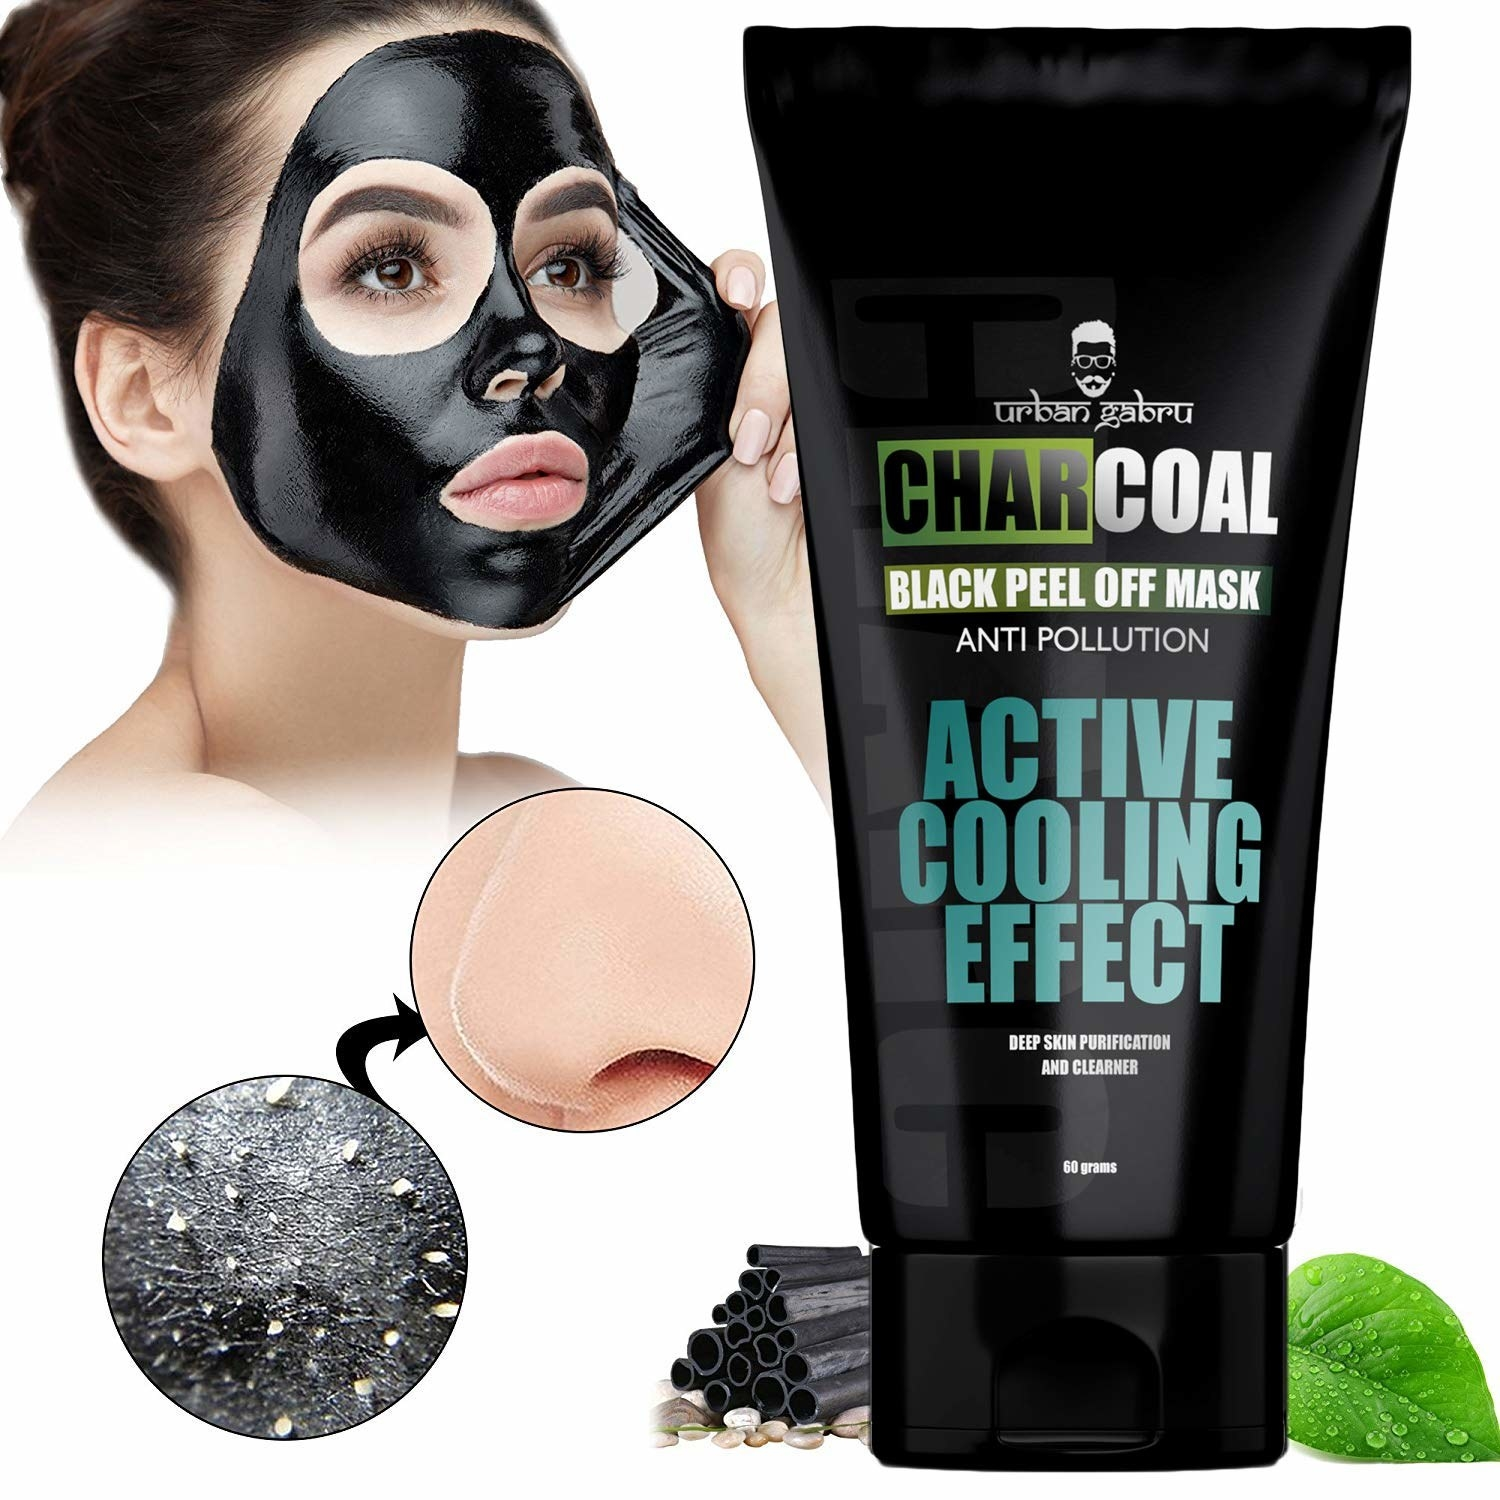 Charcoal peel off facemask packaging